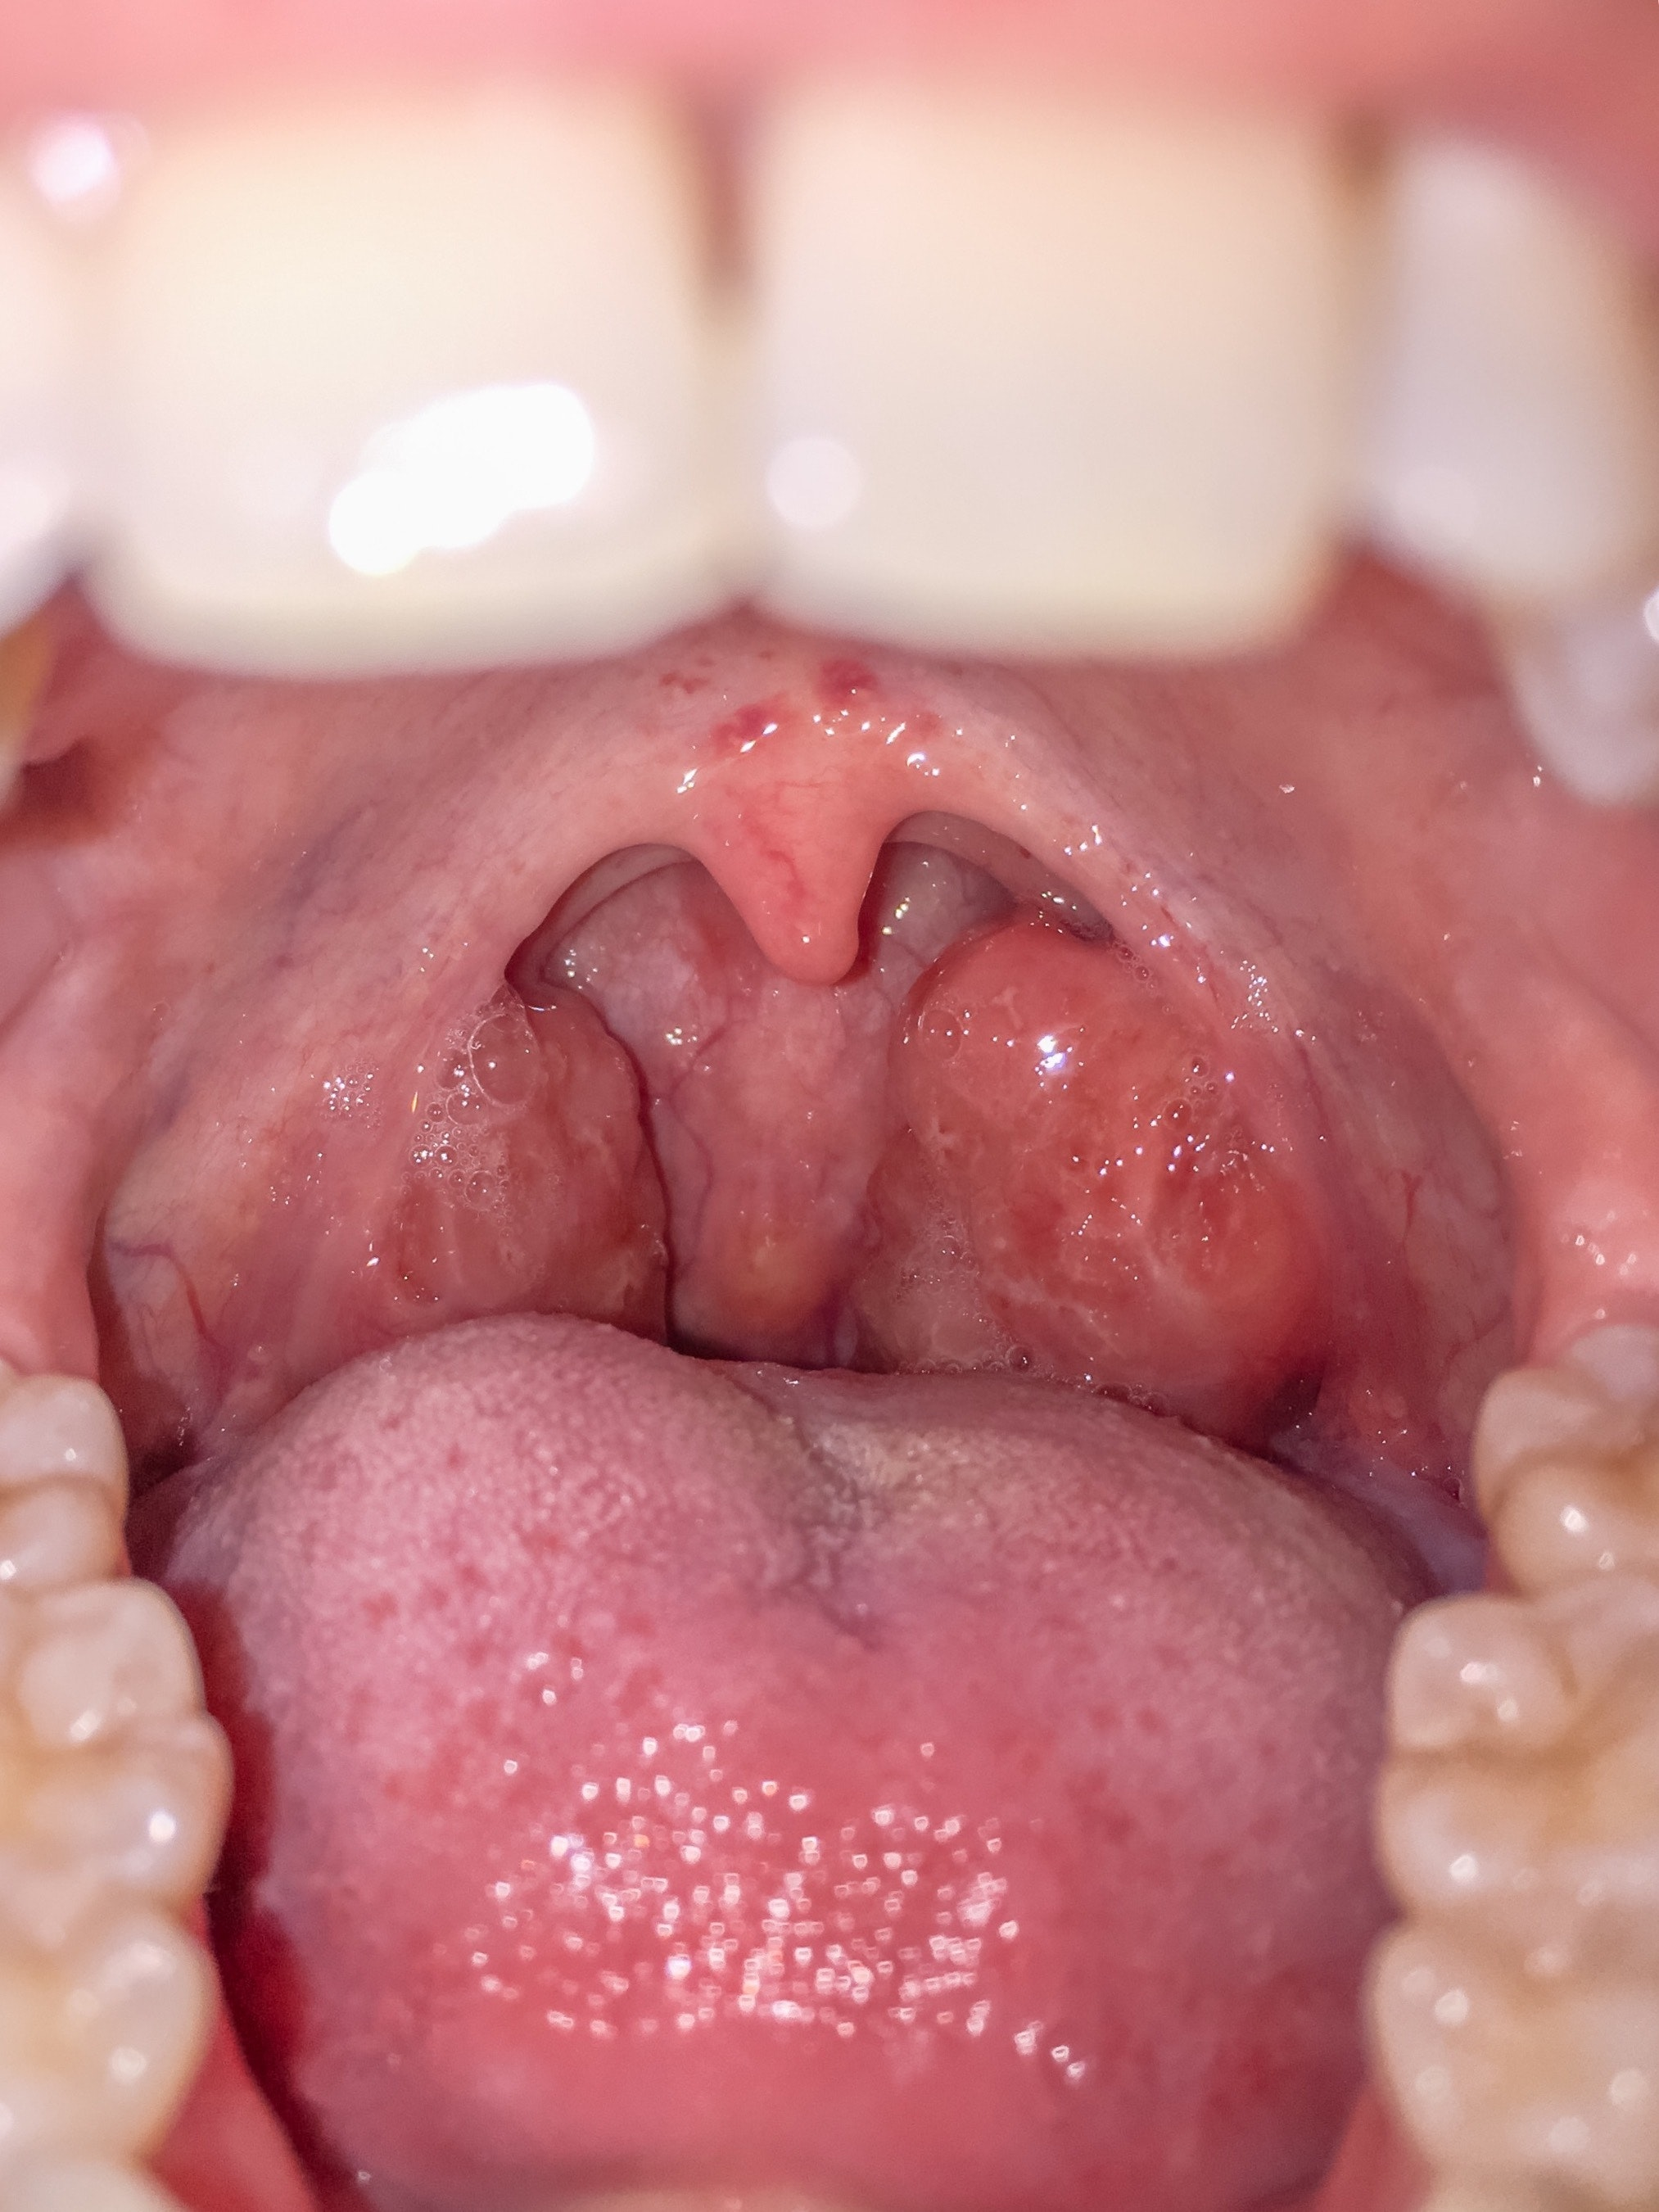 An image depicting a person suffering from swollen, red tonsils symptoms